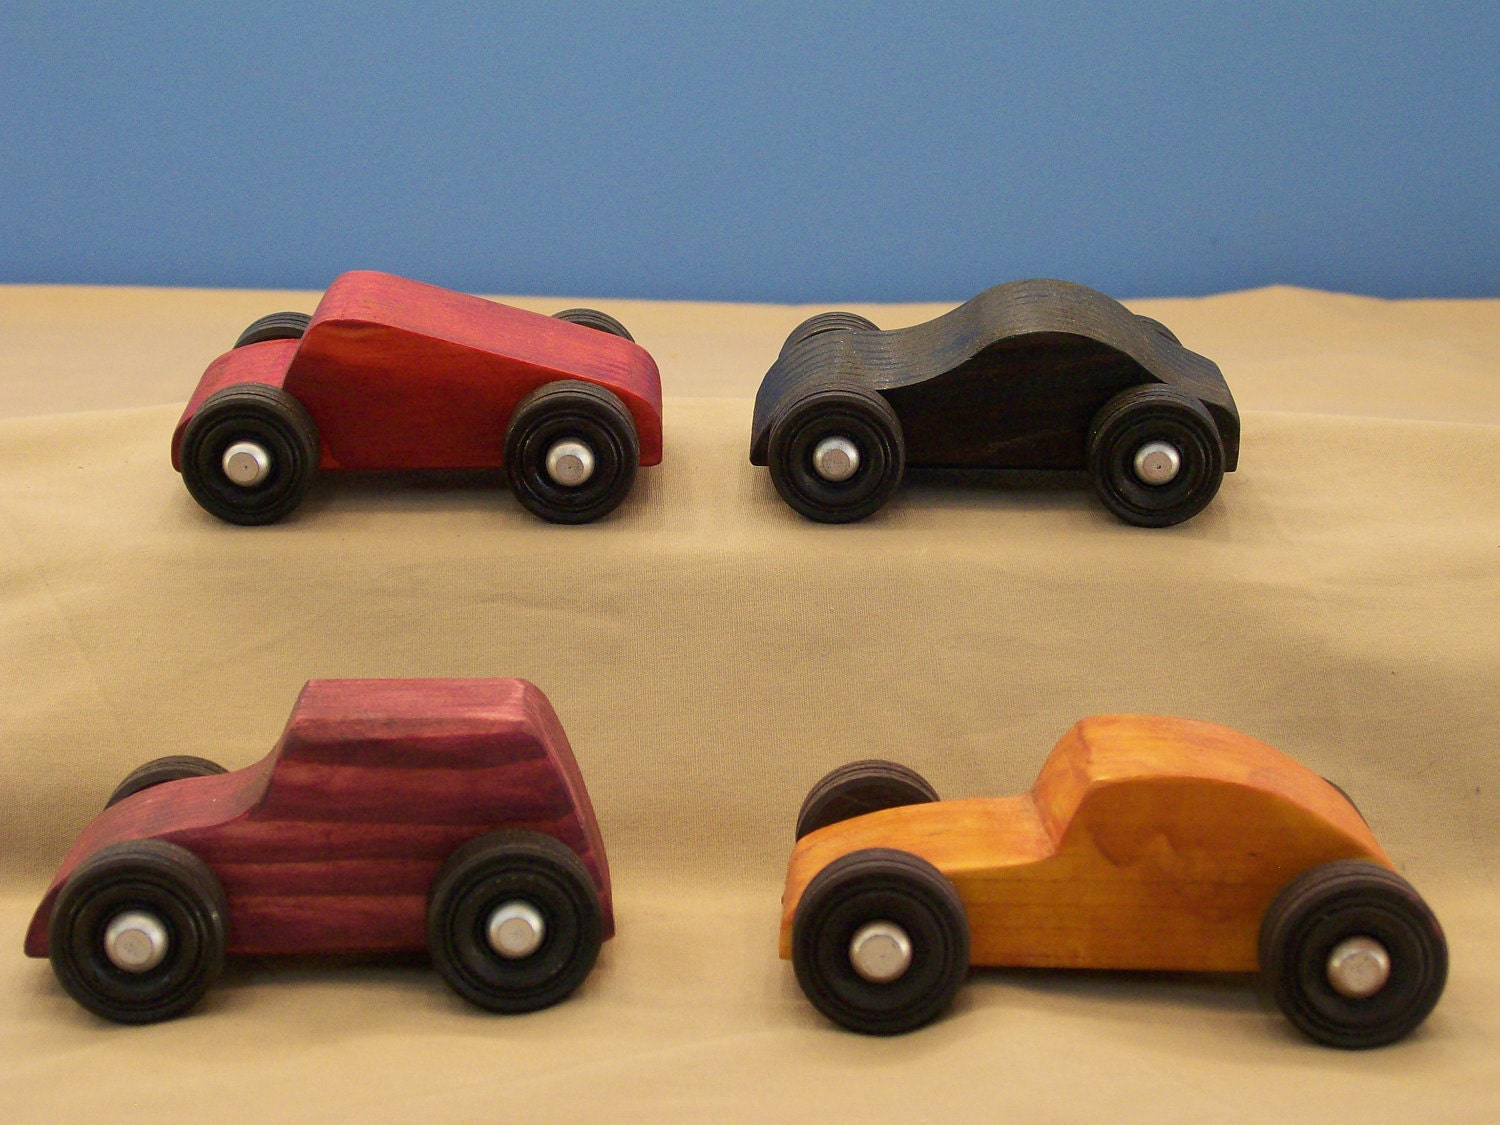 Wood Toy Cars Small Wood Toy Cars Wood Toys by HummelCreations